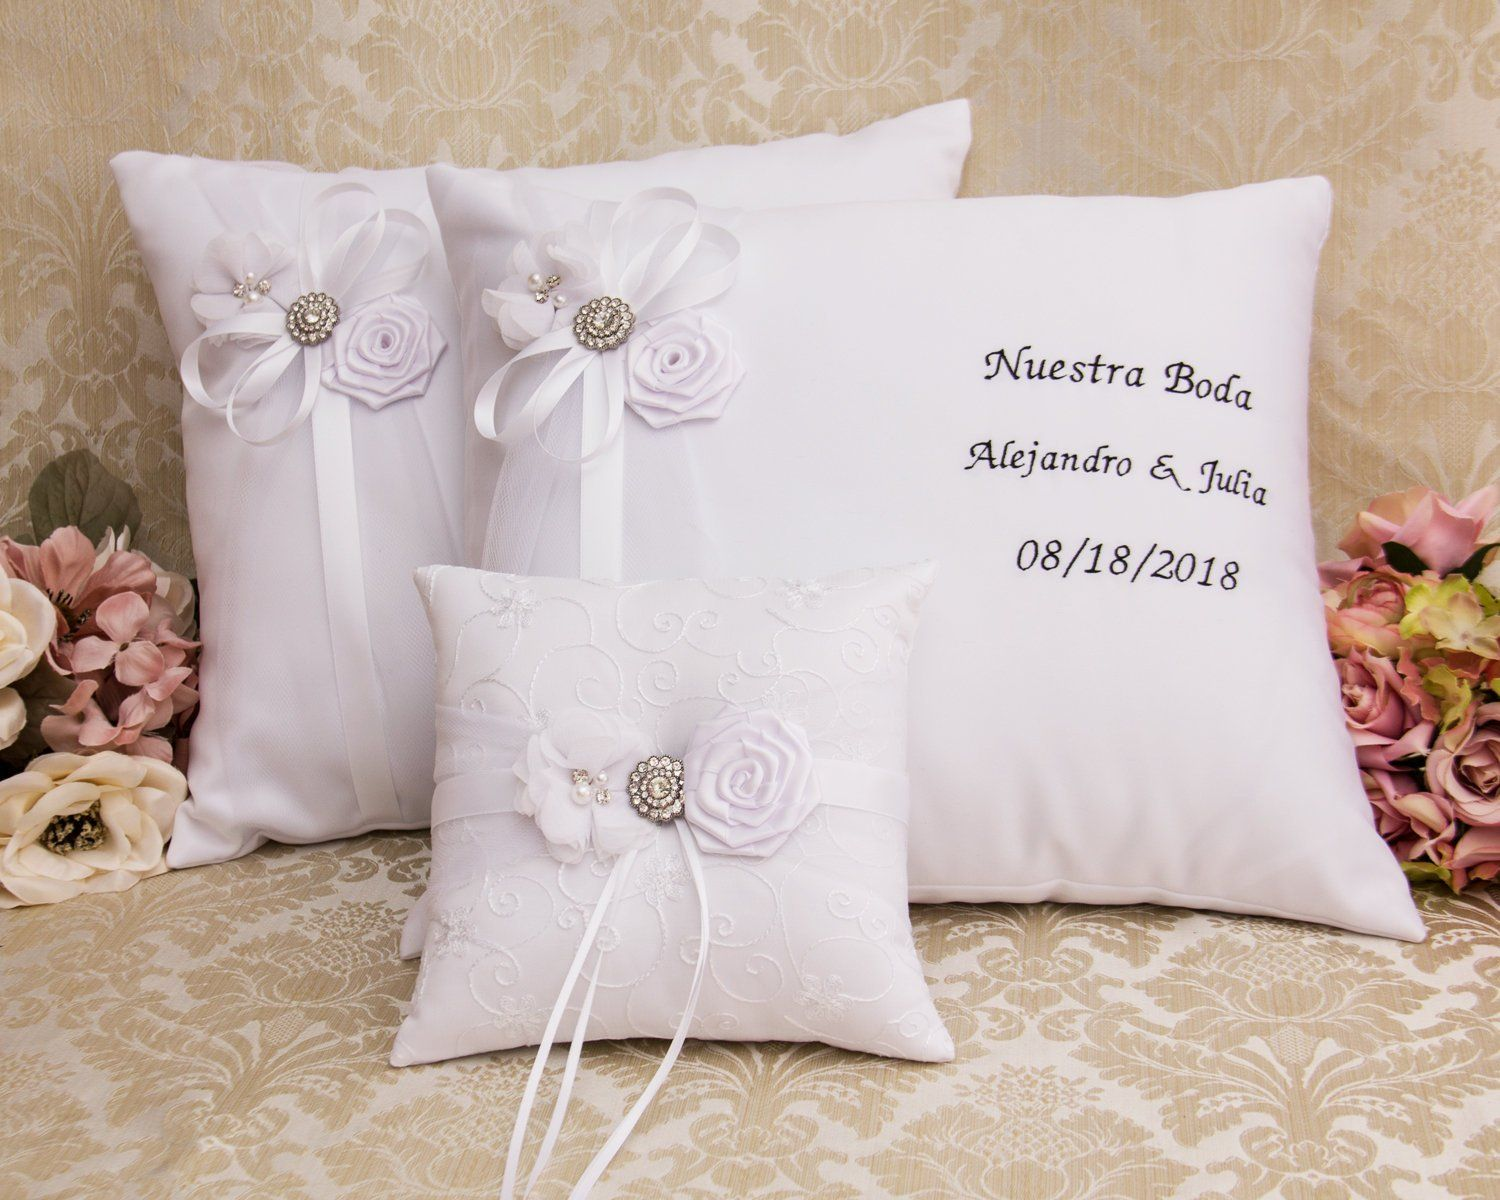 Set of 2 Custom Color Accent Ring Bearer Pillows